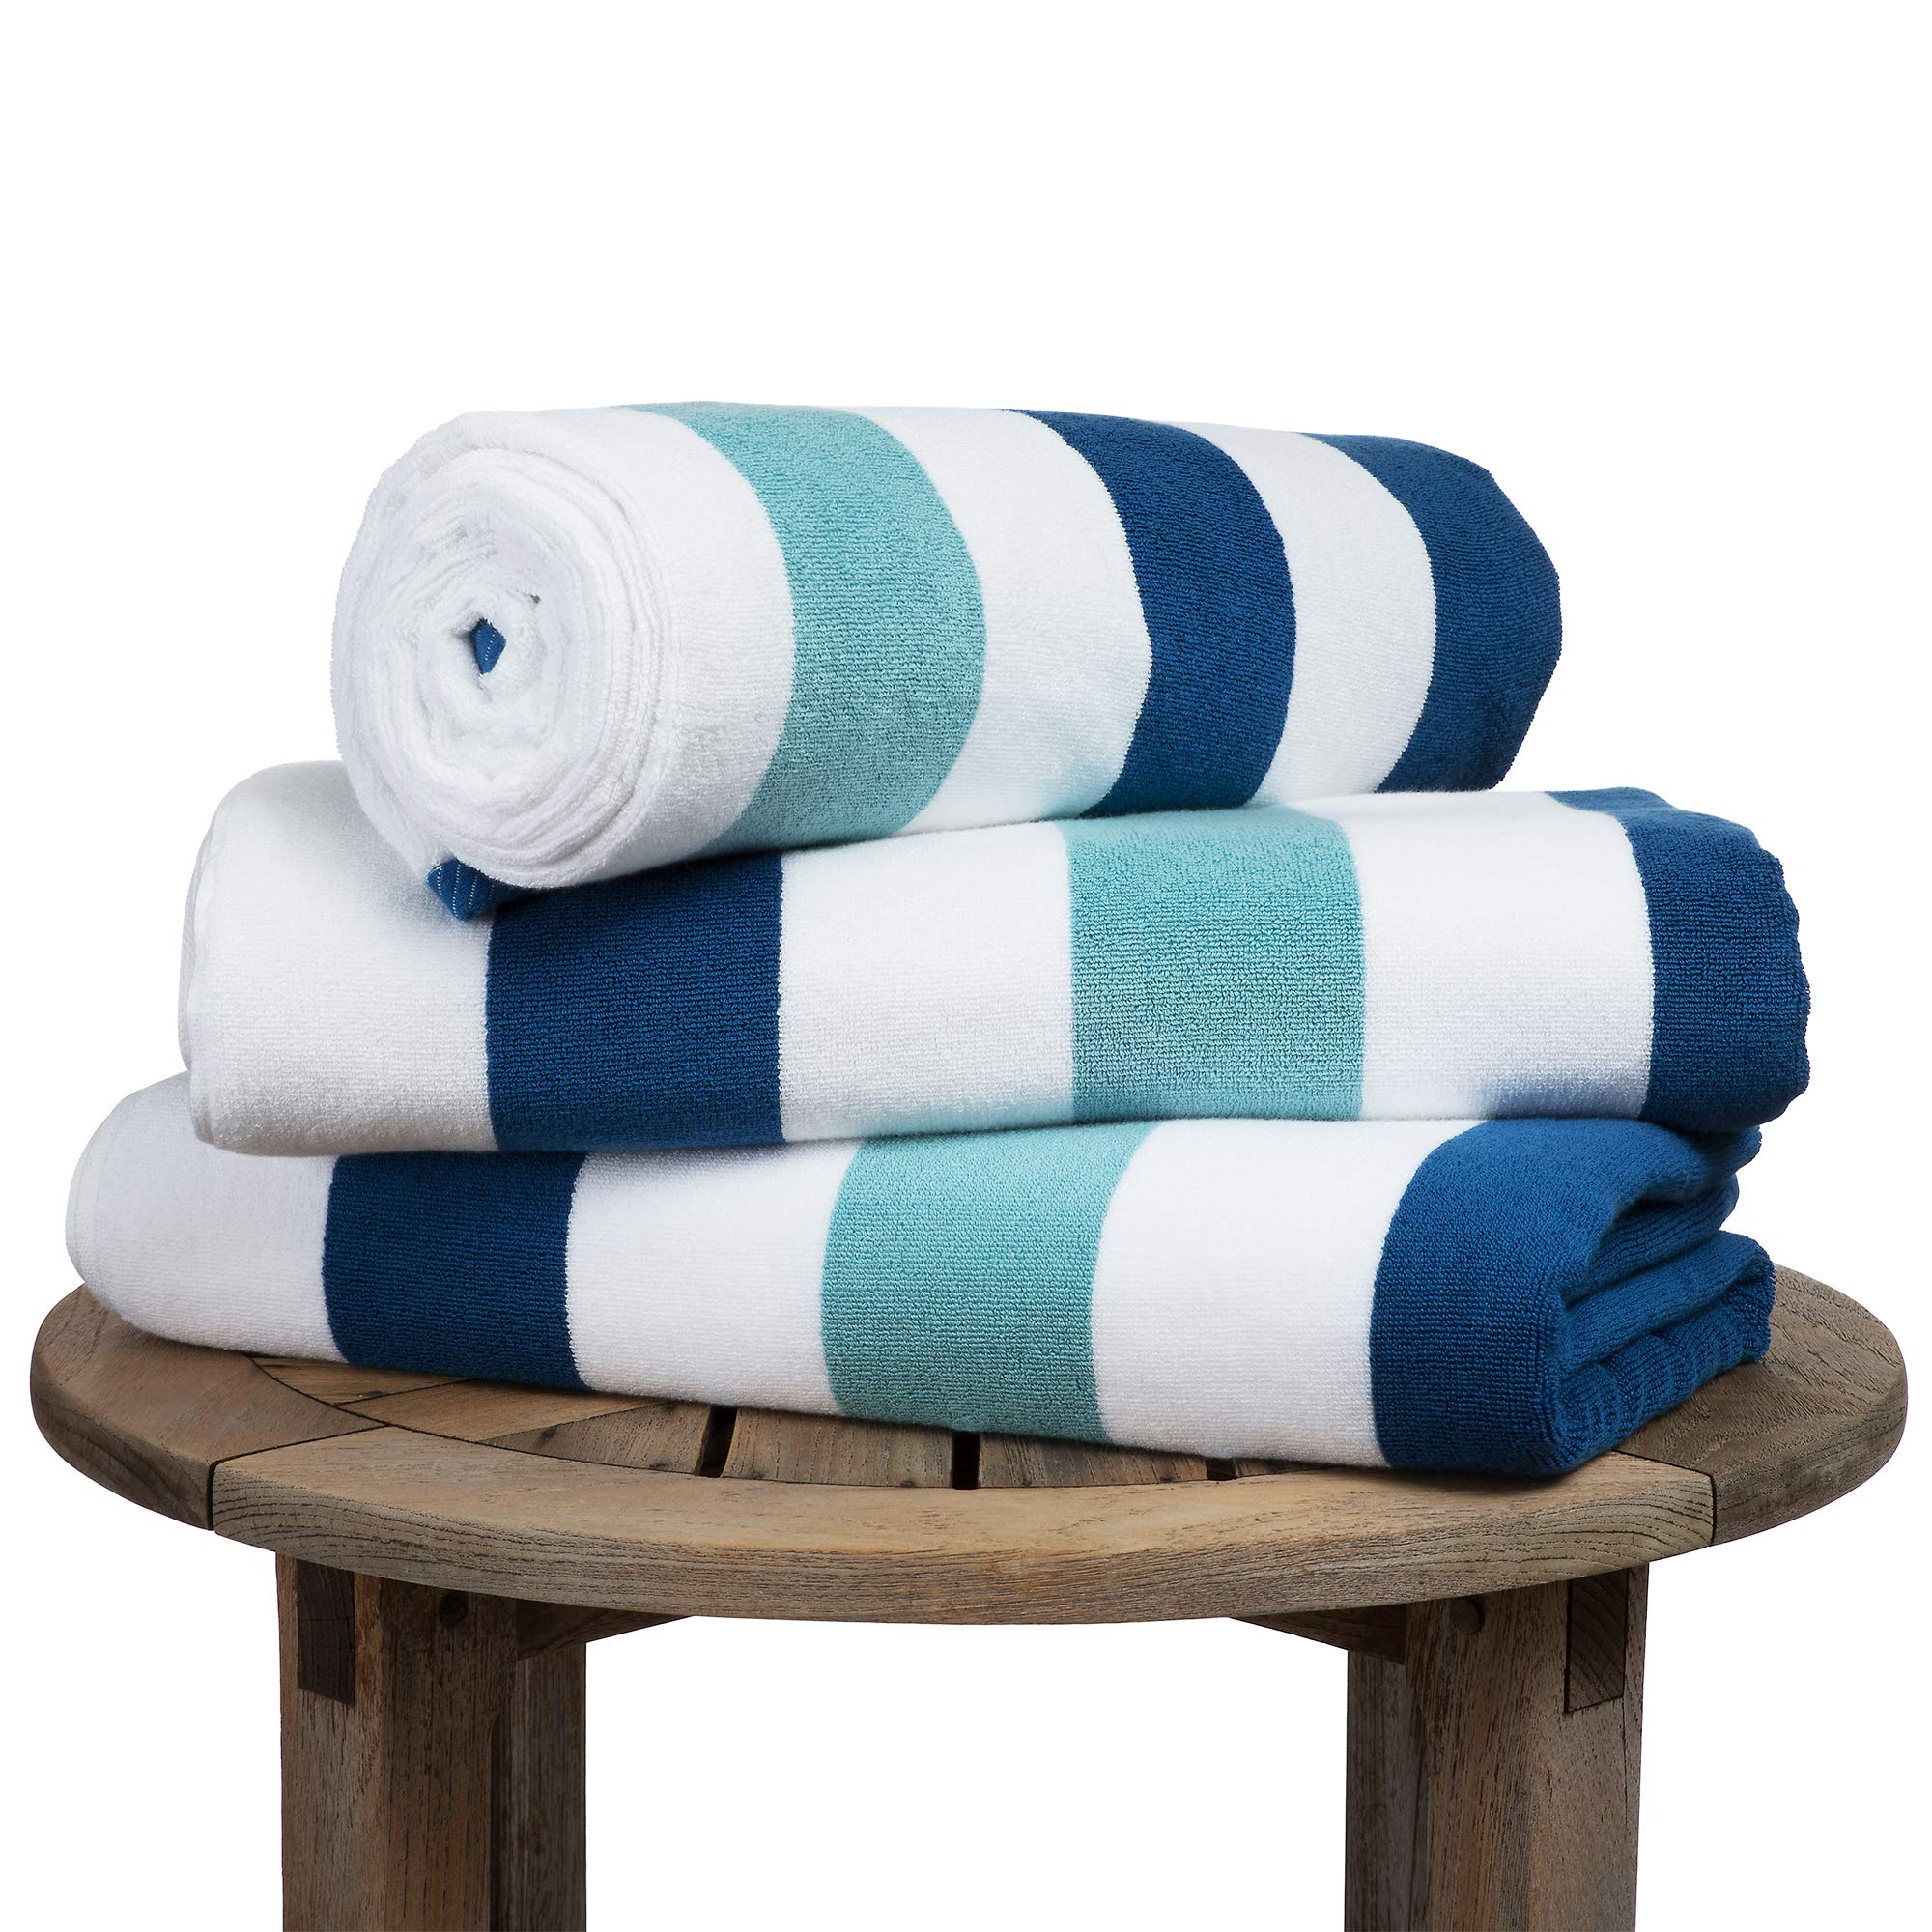 Oversize Plush Cabana Towel by Laguna Beach Textile Co | Marine Blue & Sea Glass Green | 1 Classic, Beach and Pool House Towel